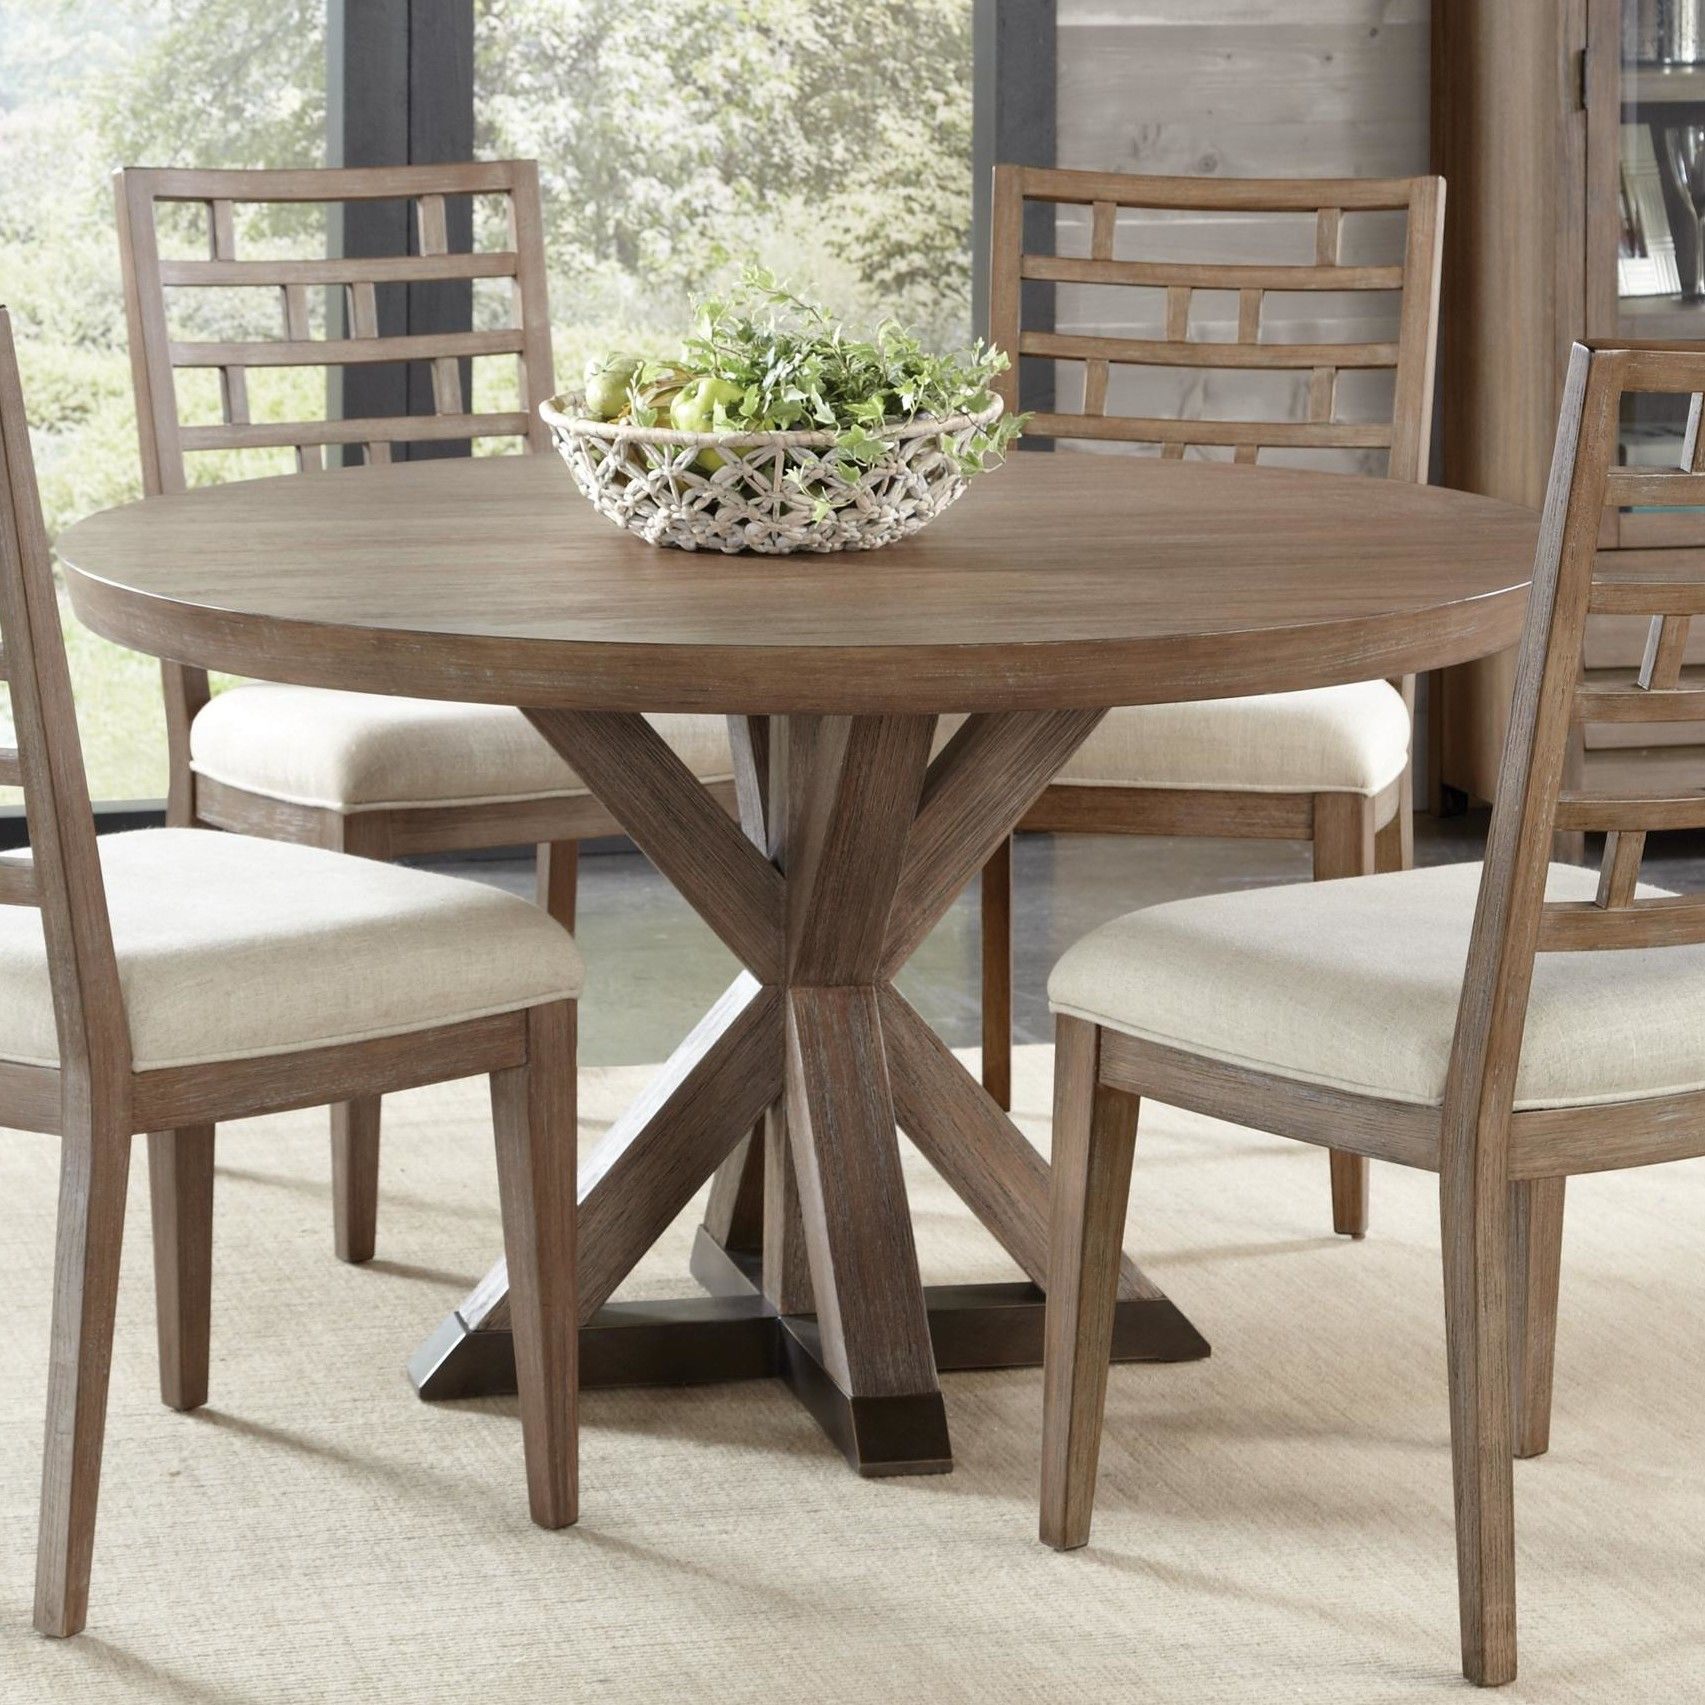 Mirabelle Dining Table Wayfair Dining Table In Kitchen Dining